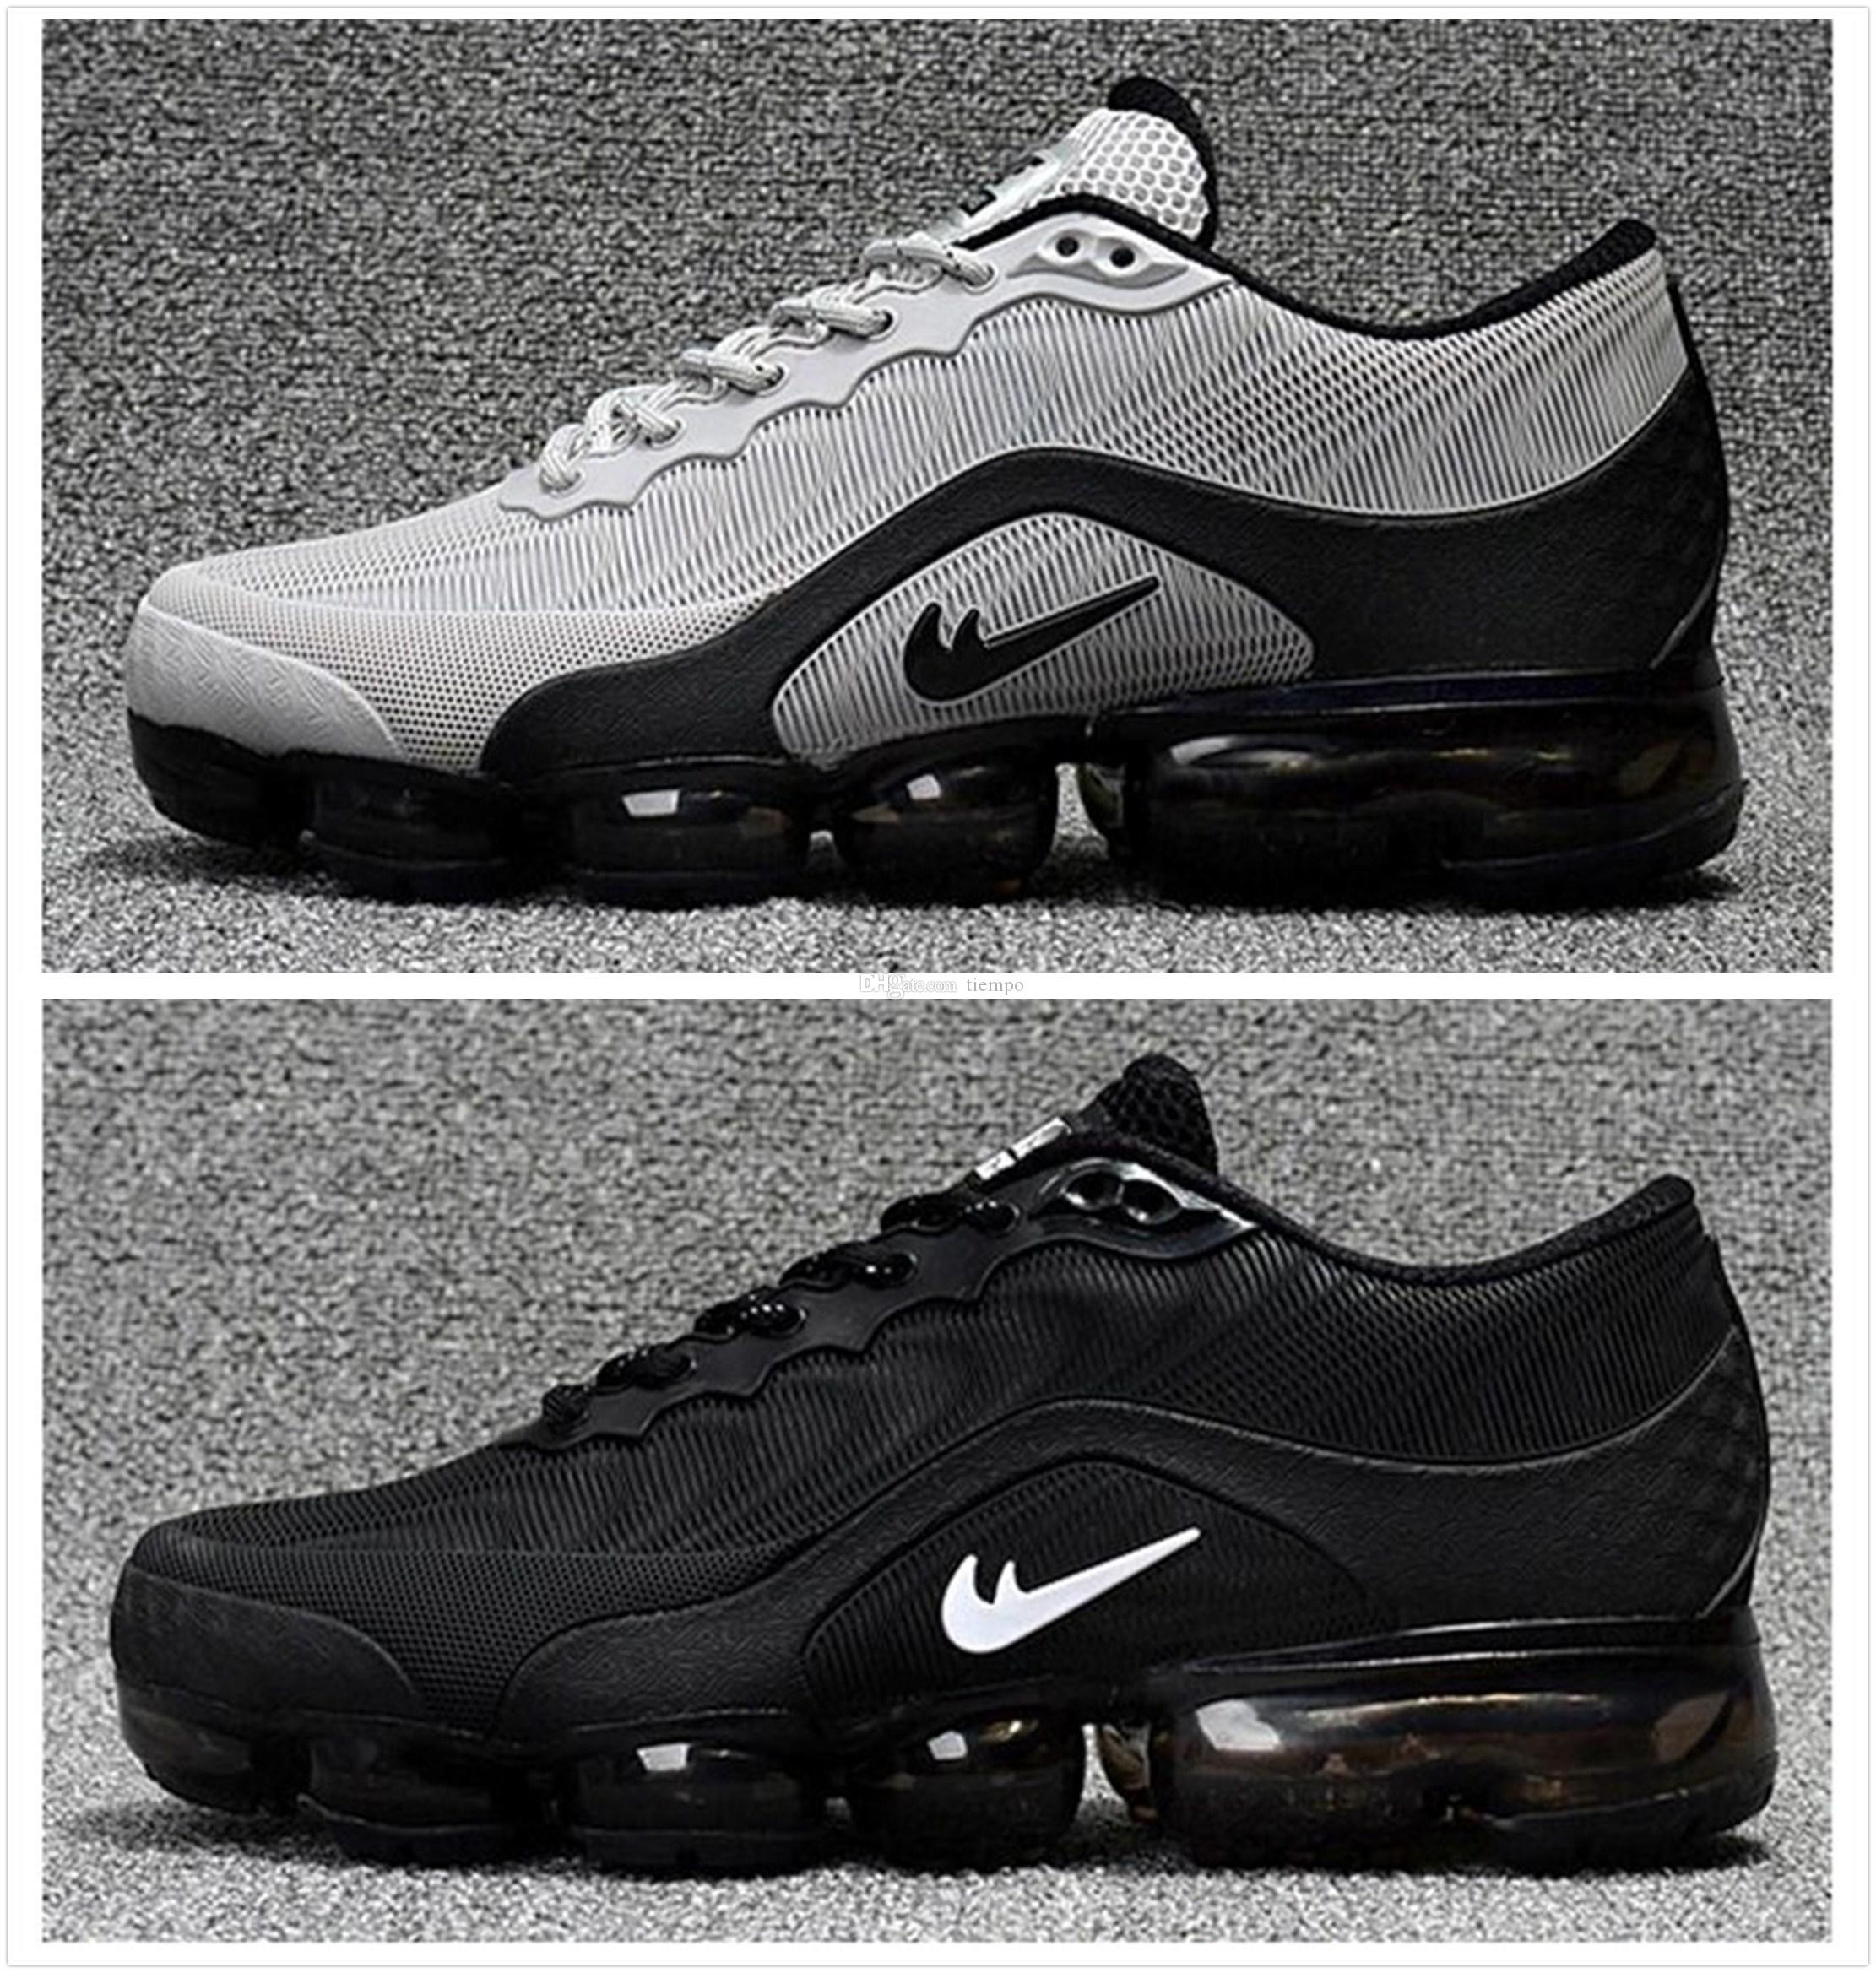 TOP quality 2018 MEN Vapormax 90 Casual Shoes Trainers Shoe Air Cushion Classic shoes 40-47 shop offer cheap online free shipping release dates best wholesale free shipping sale outlet fast delivery XdUA4GfFcx